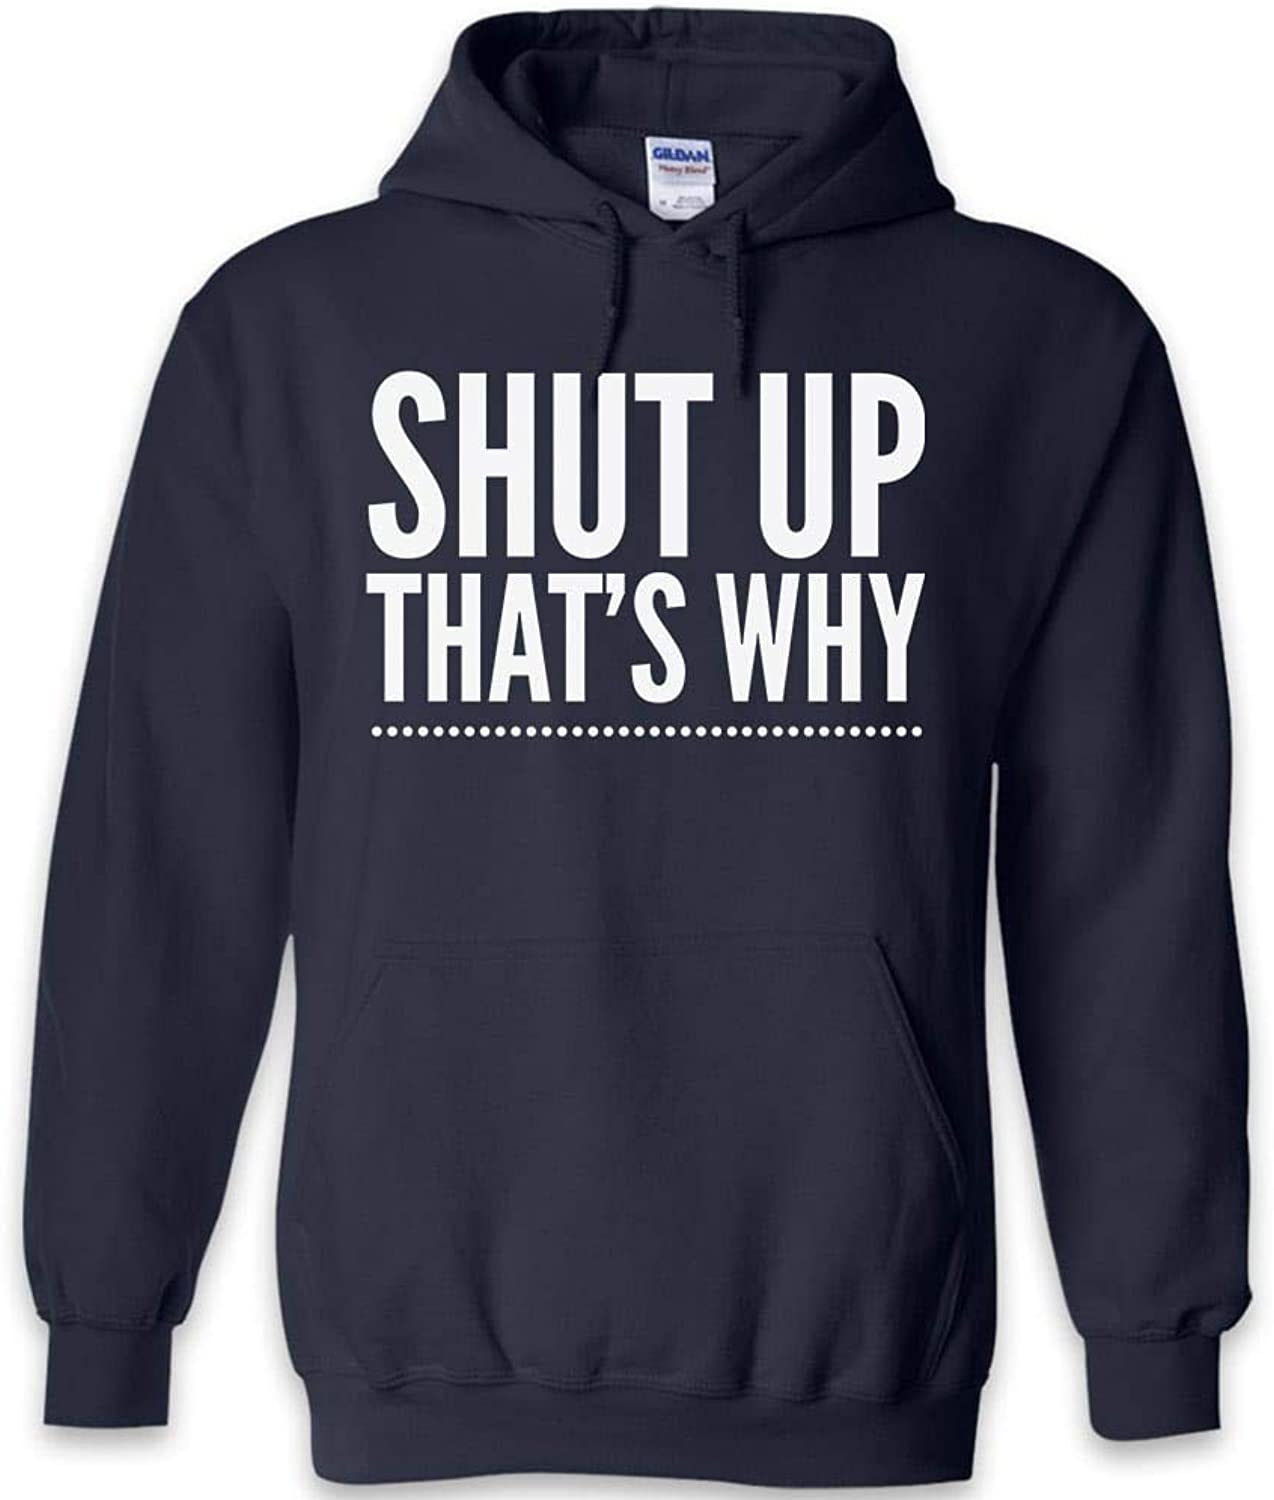 Teelaunch Shut up That's why Funny Hoodie   Black Navy Grey   S to 2XL